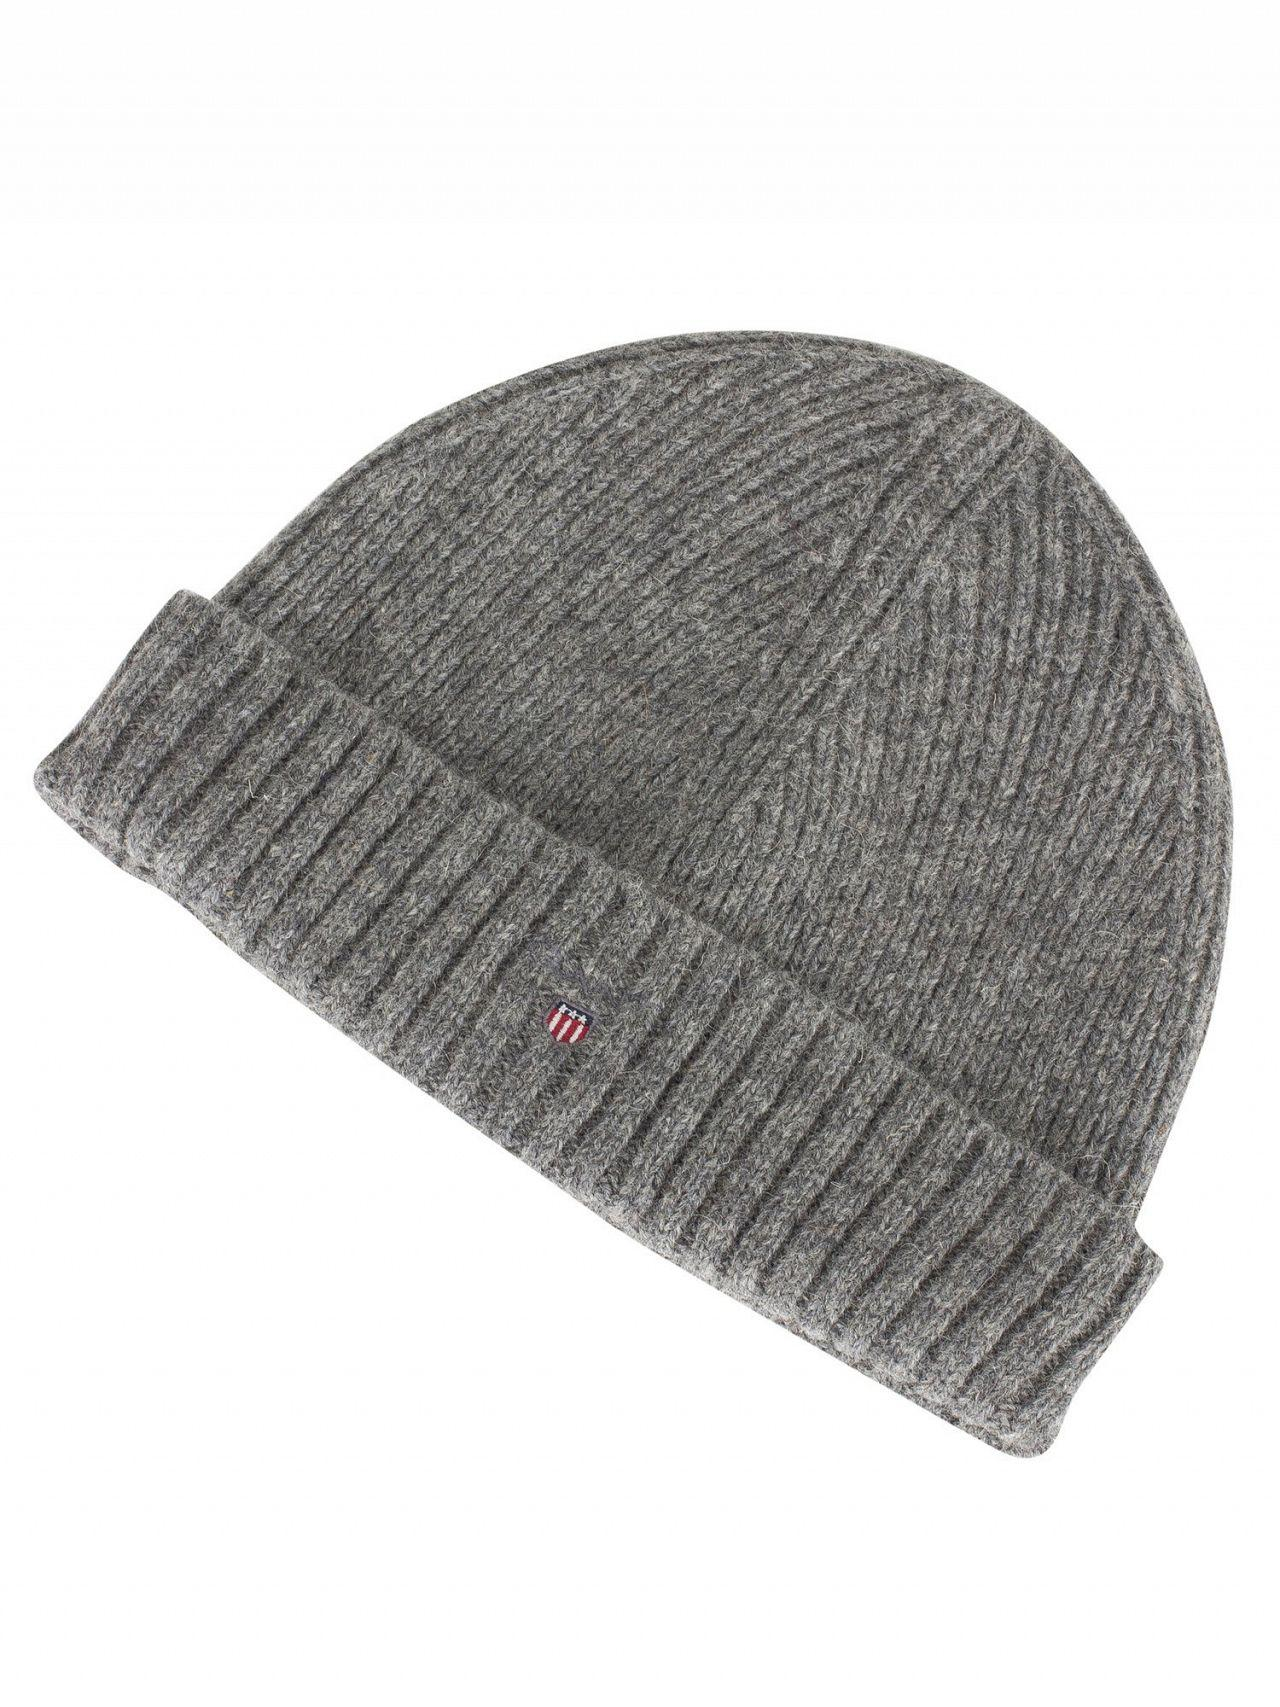 22f84a8fe21 Gant Dark Grey Melange Wool Lined Beanie in Gray for Men - Lyst